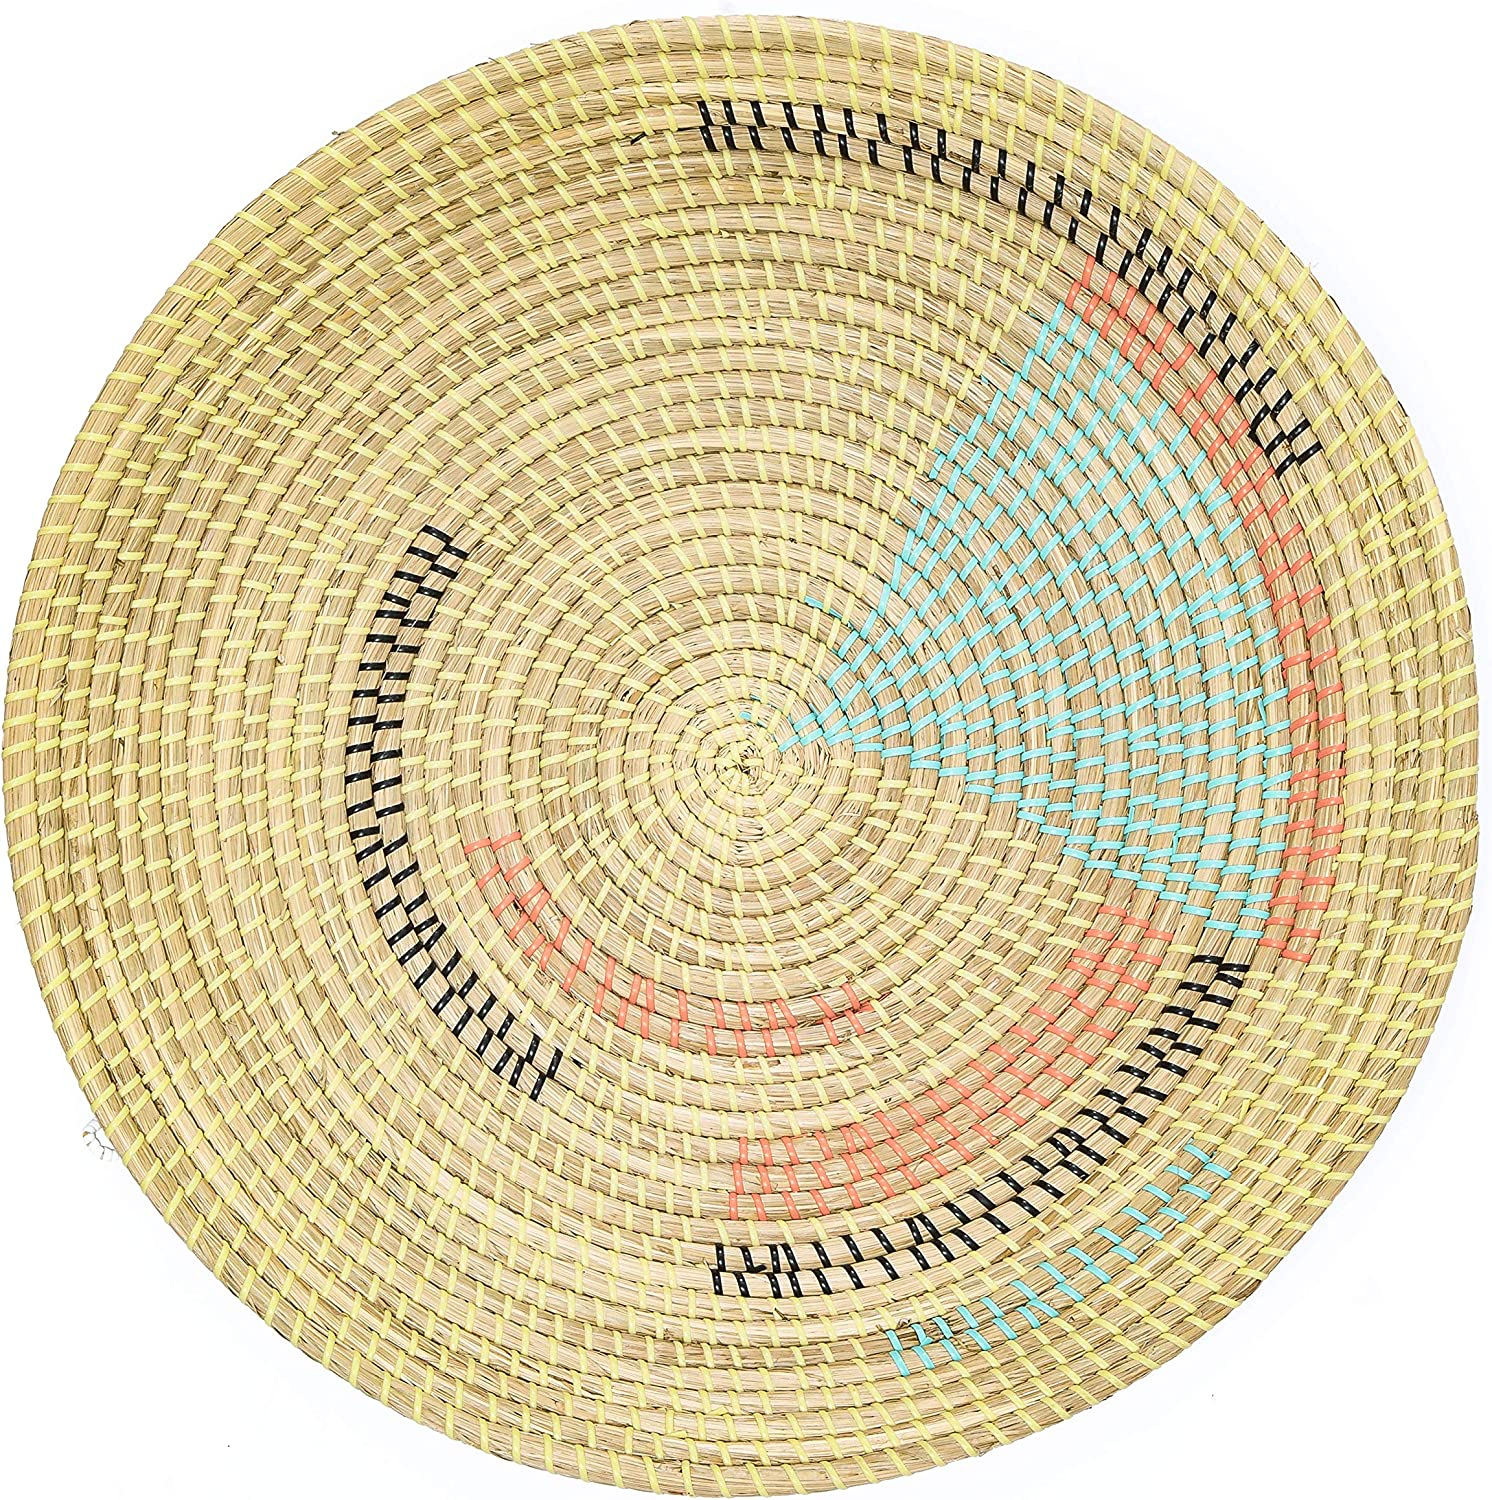 """Artera Wicker Wall Basket Decor - Hanging Woven Seagrass Flat Baskets, Round Boho Wall Basket Decor for Living Room or Bedroom, Unique Wall Art. (22"""" Round, 22"""" Round - Style 1)"""